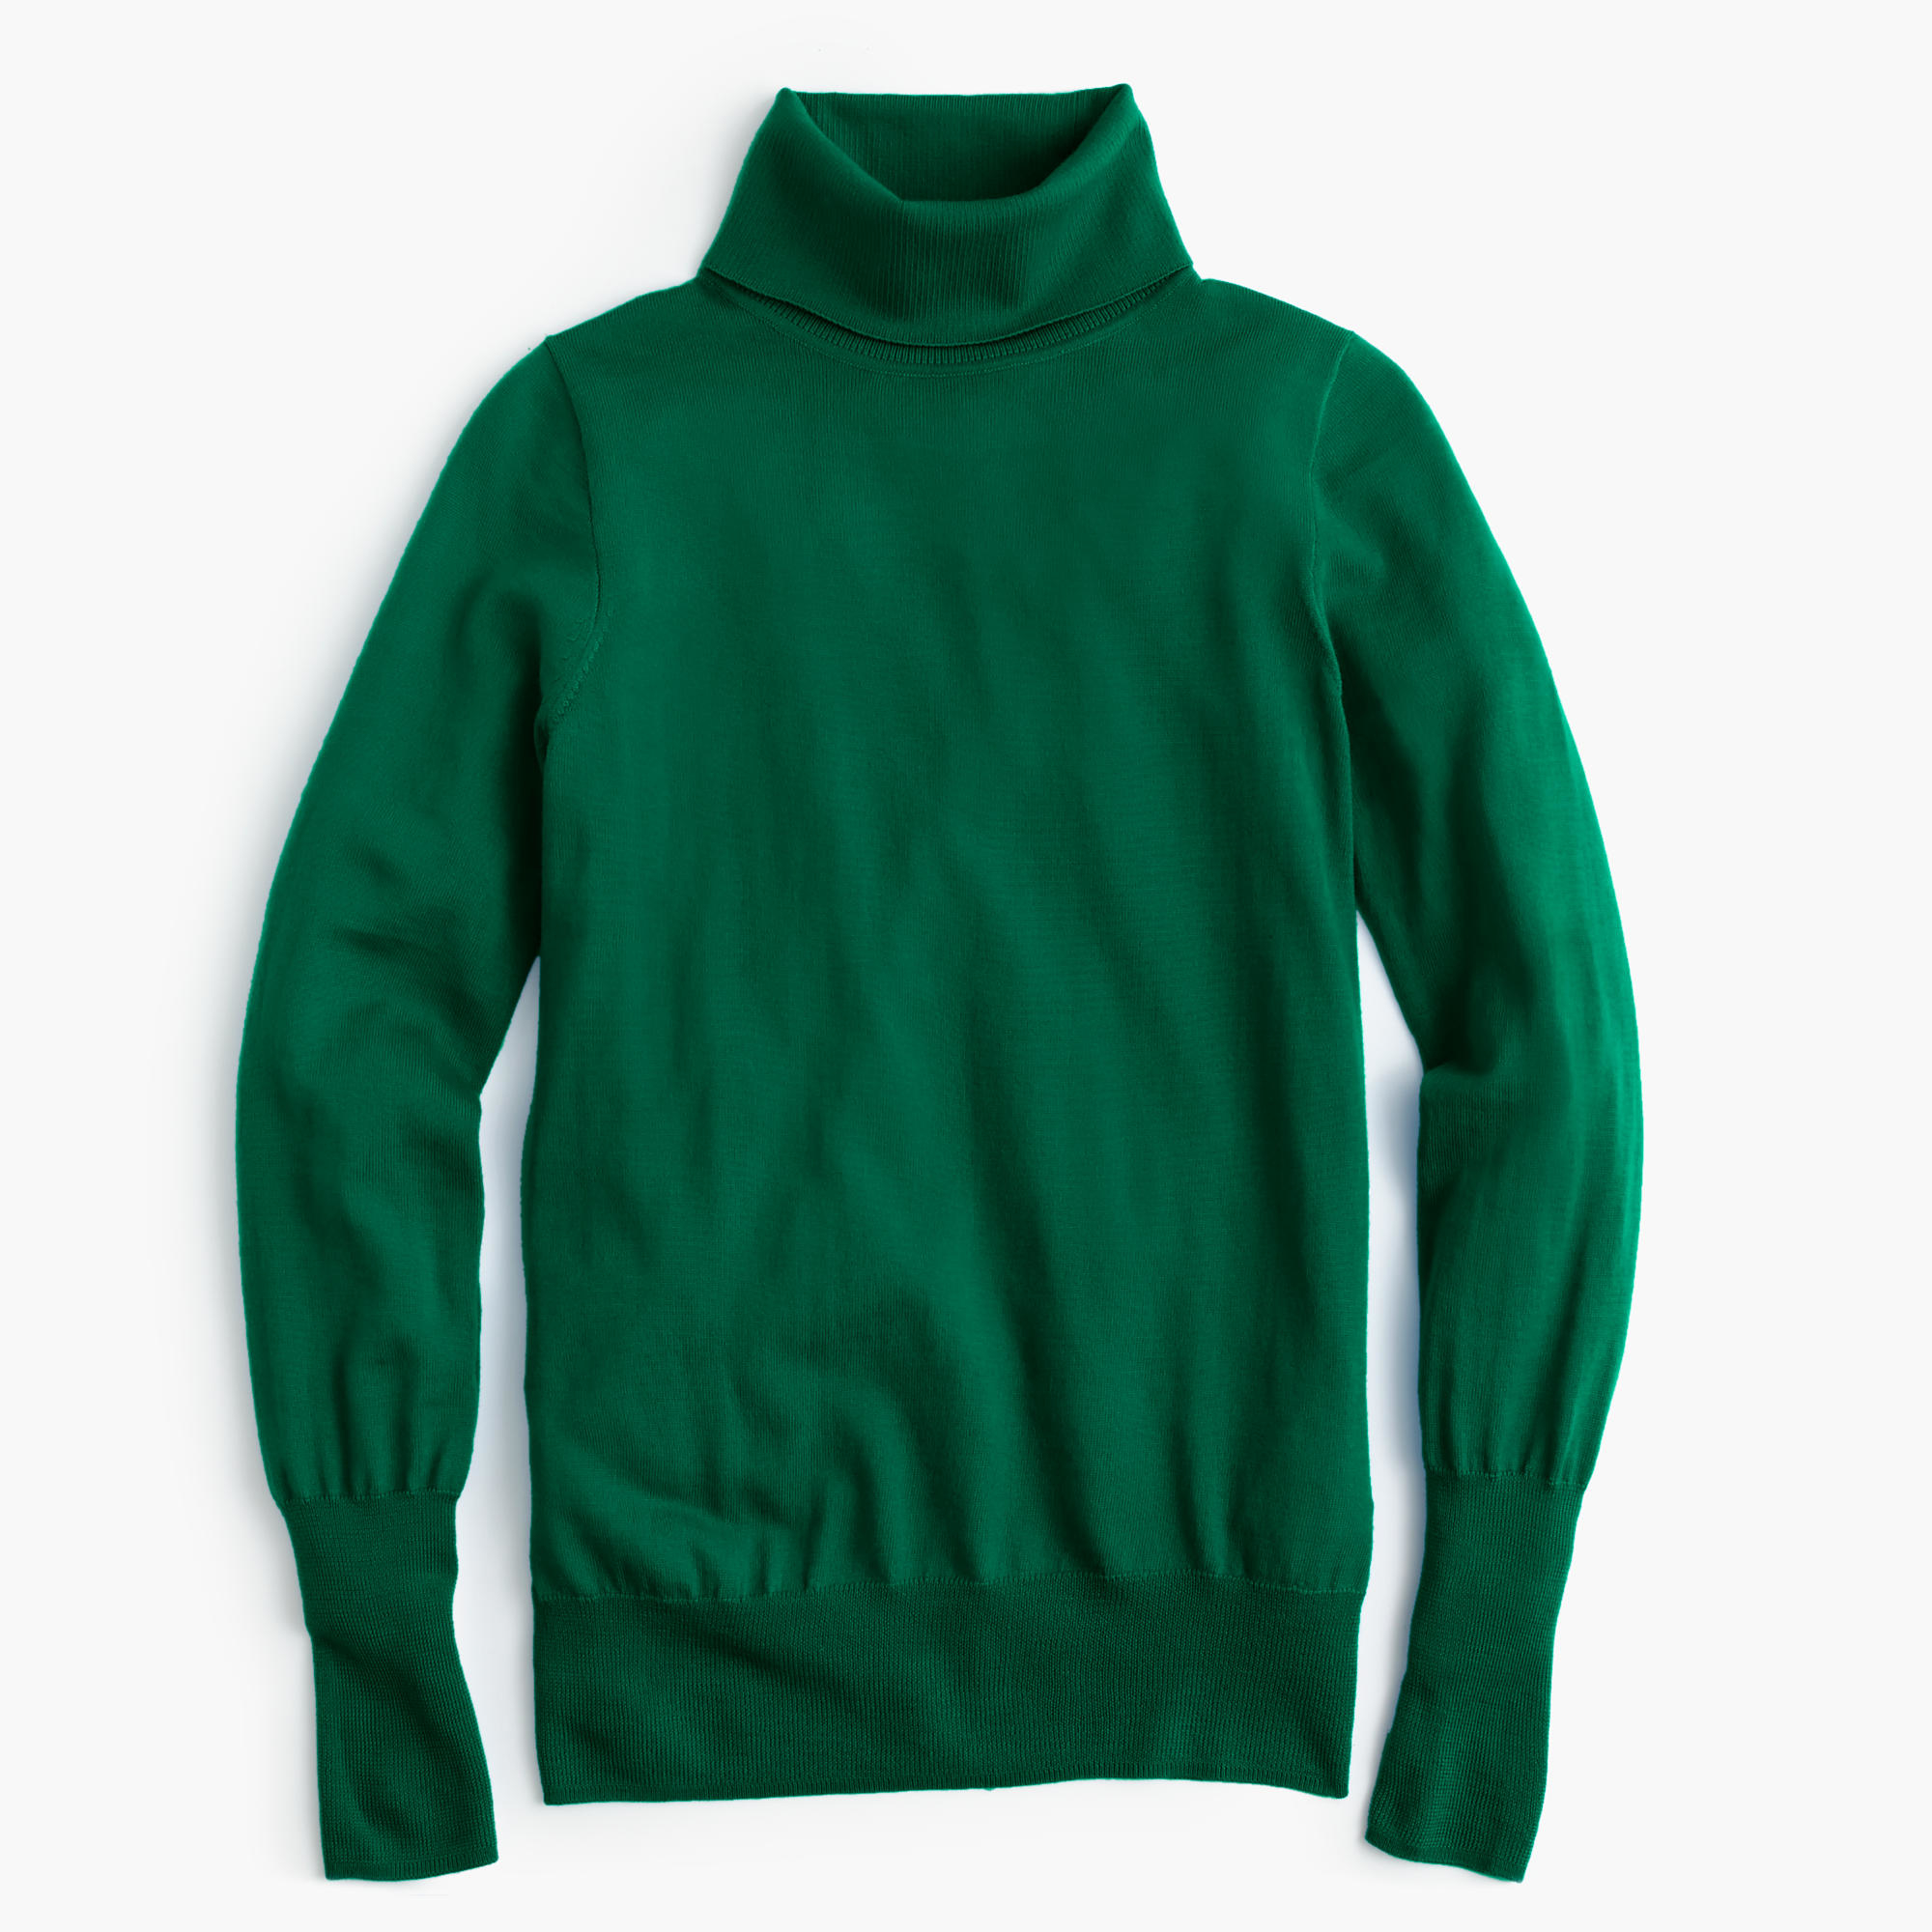 Merino Wool Waffle Knit Henley Sweater An ancient and universal fiber One of the oldest and most universal fibers, felted or woven wool has been used for garments and household linens since the earliest civilizations.